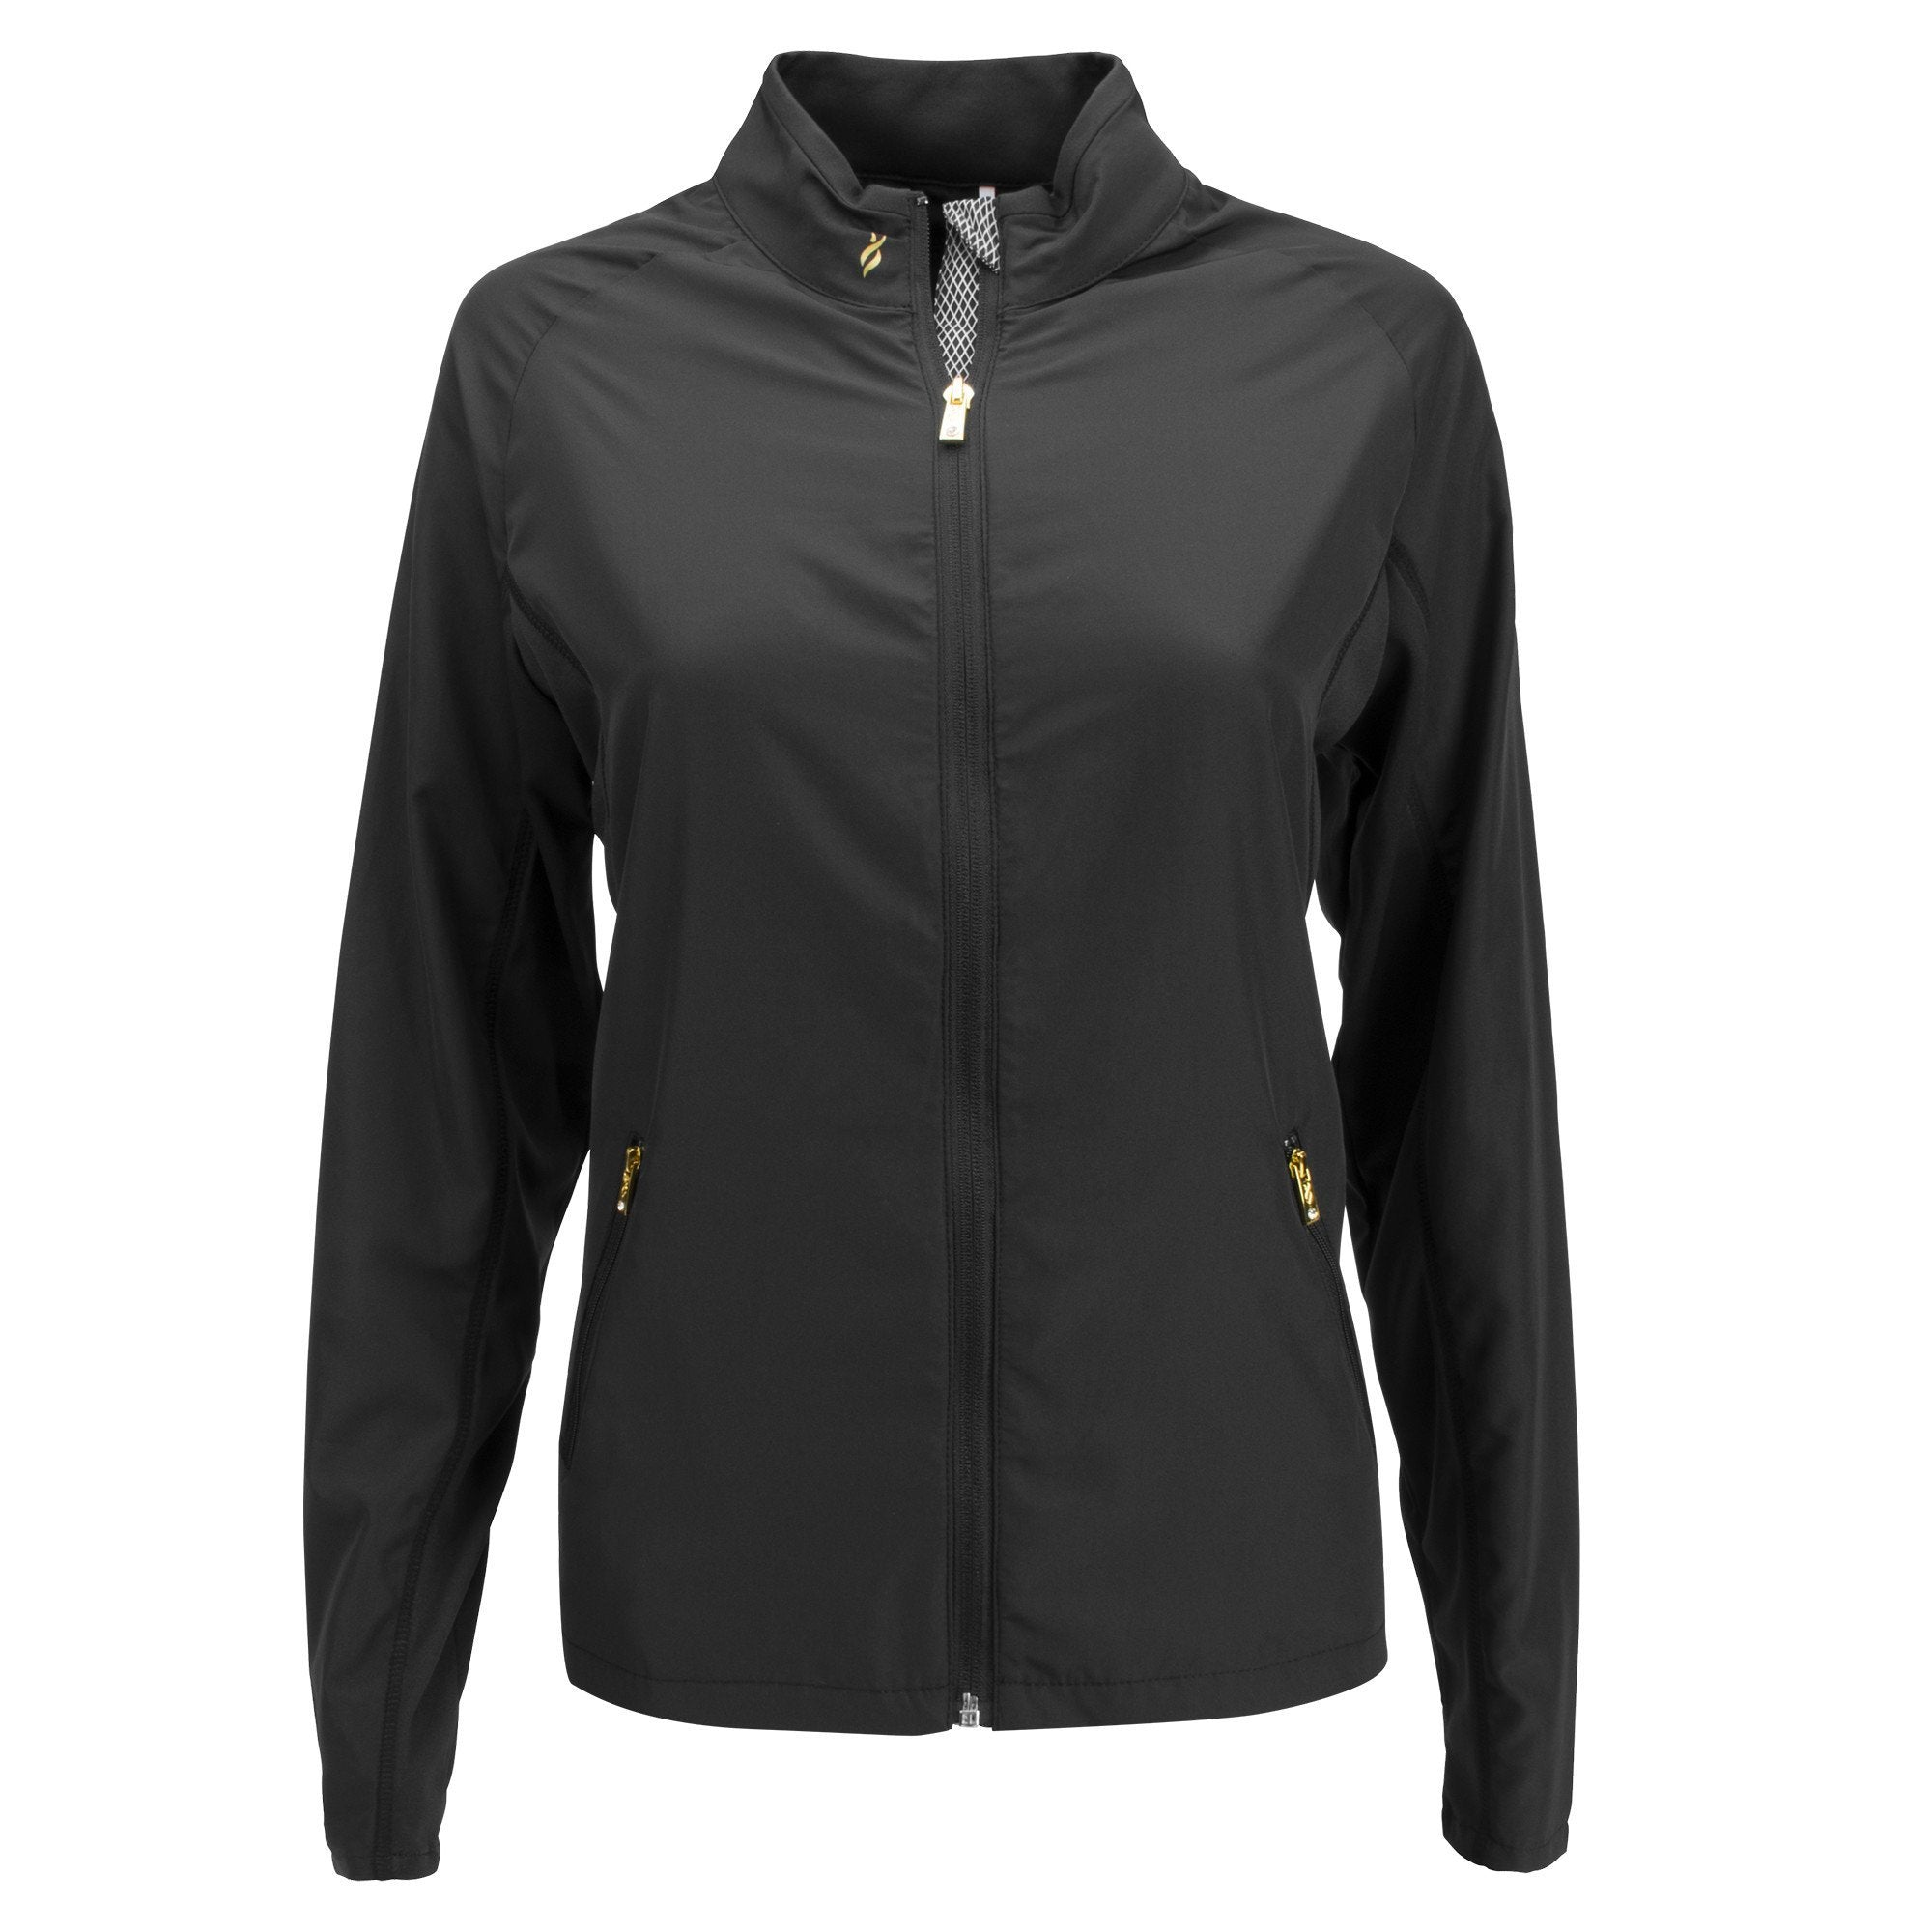 Nancy Lopez Compass Jacket Black